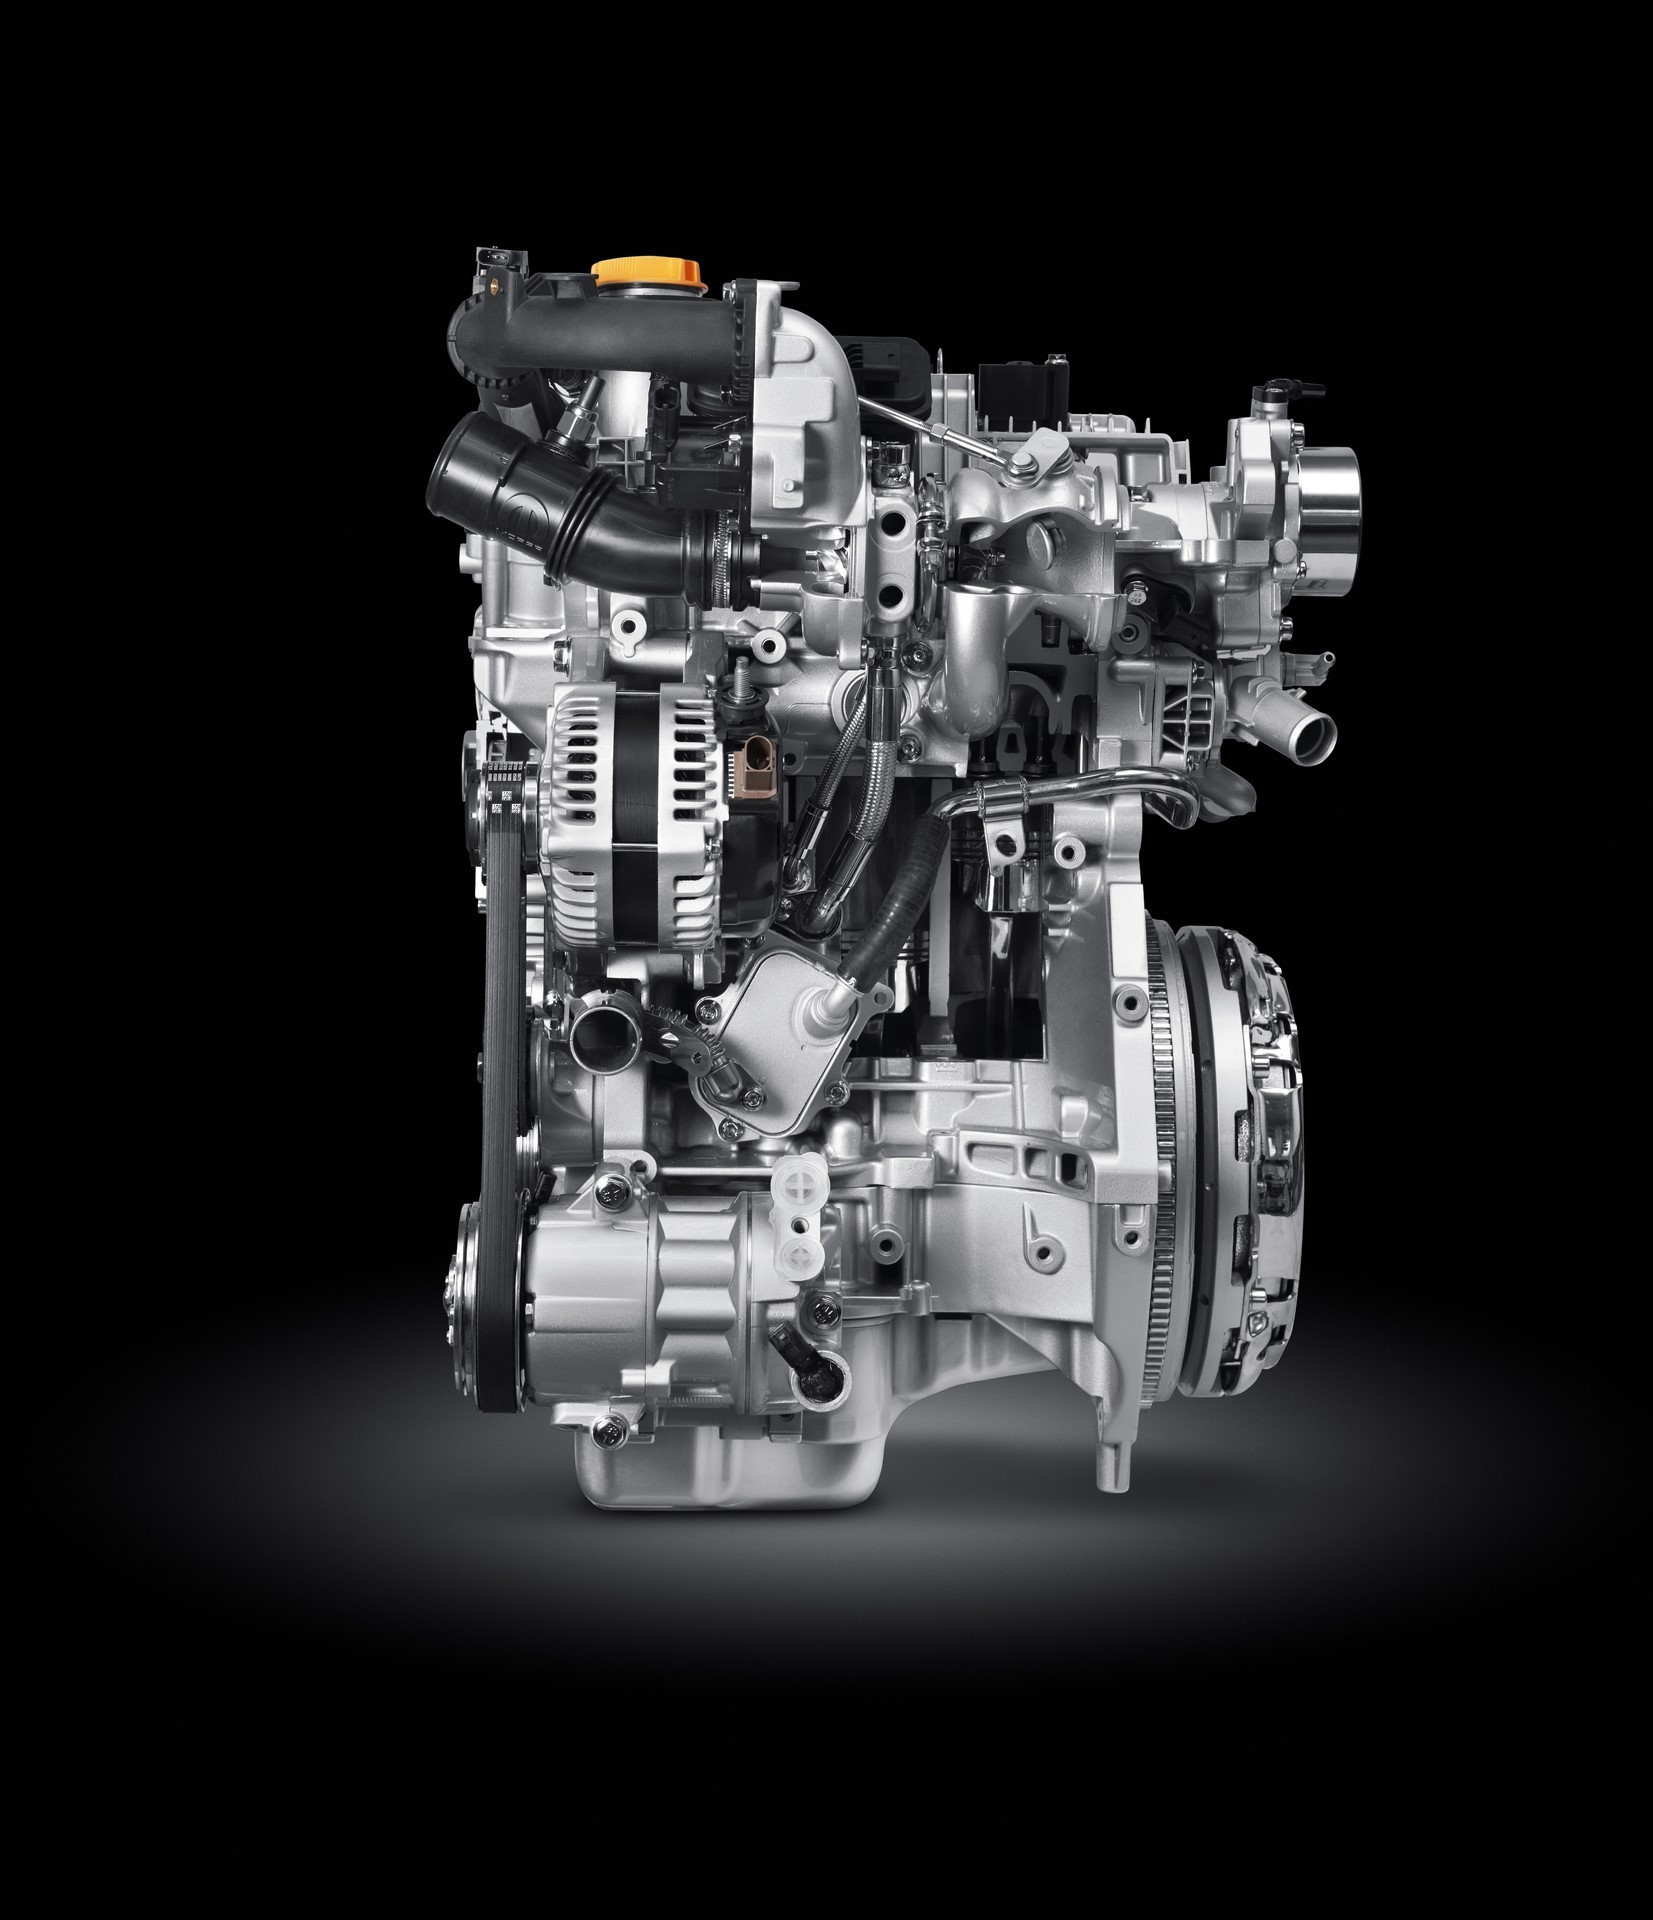 180828_Fiat_New-10L-Turbo-3-cylinder-120HP_04